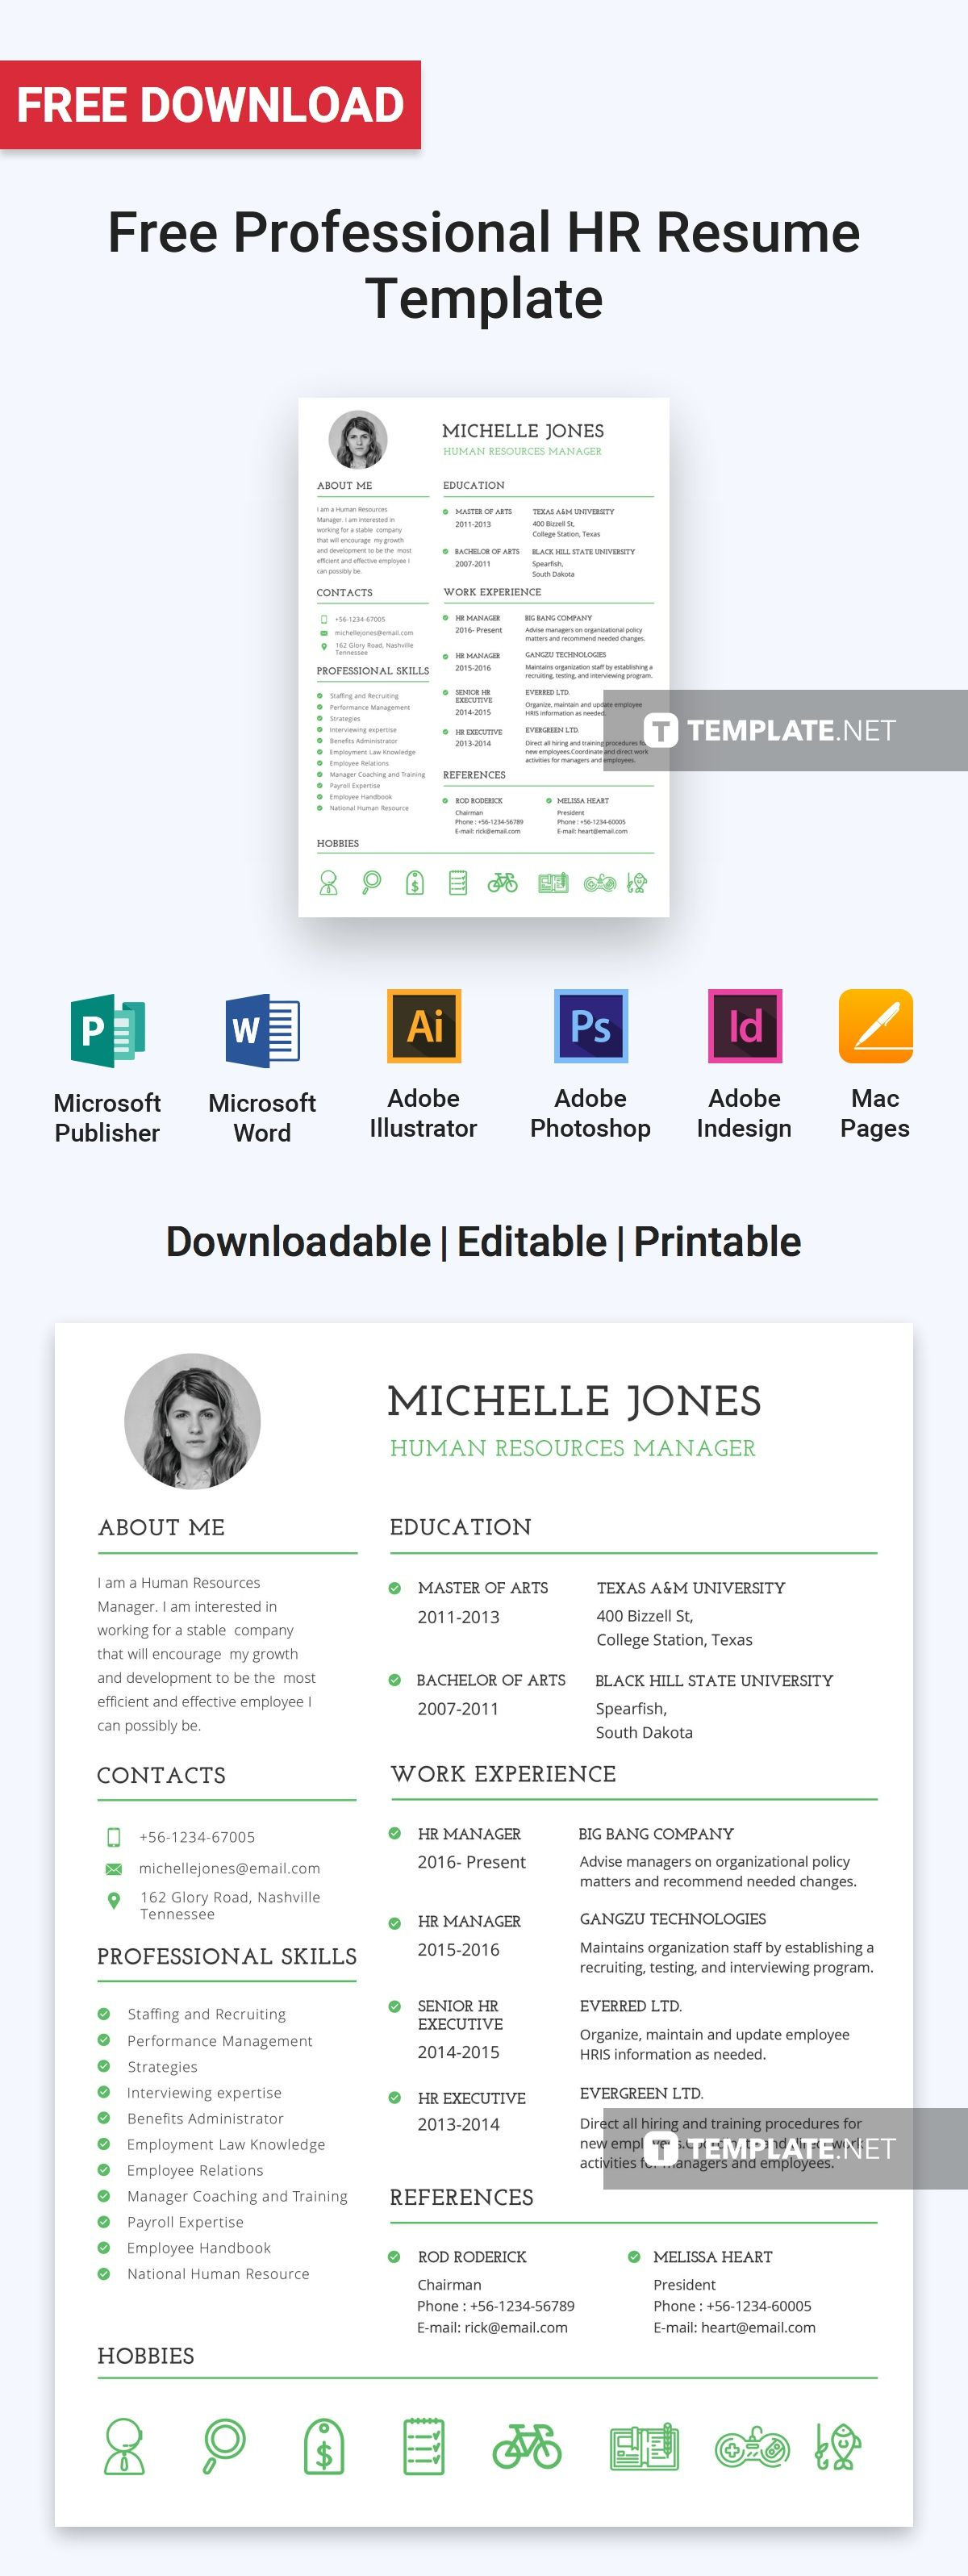 Free Professional HR Resume Template Downloadable resume